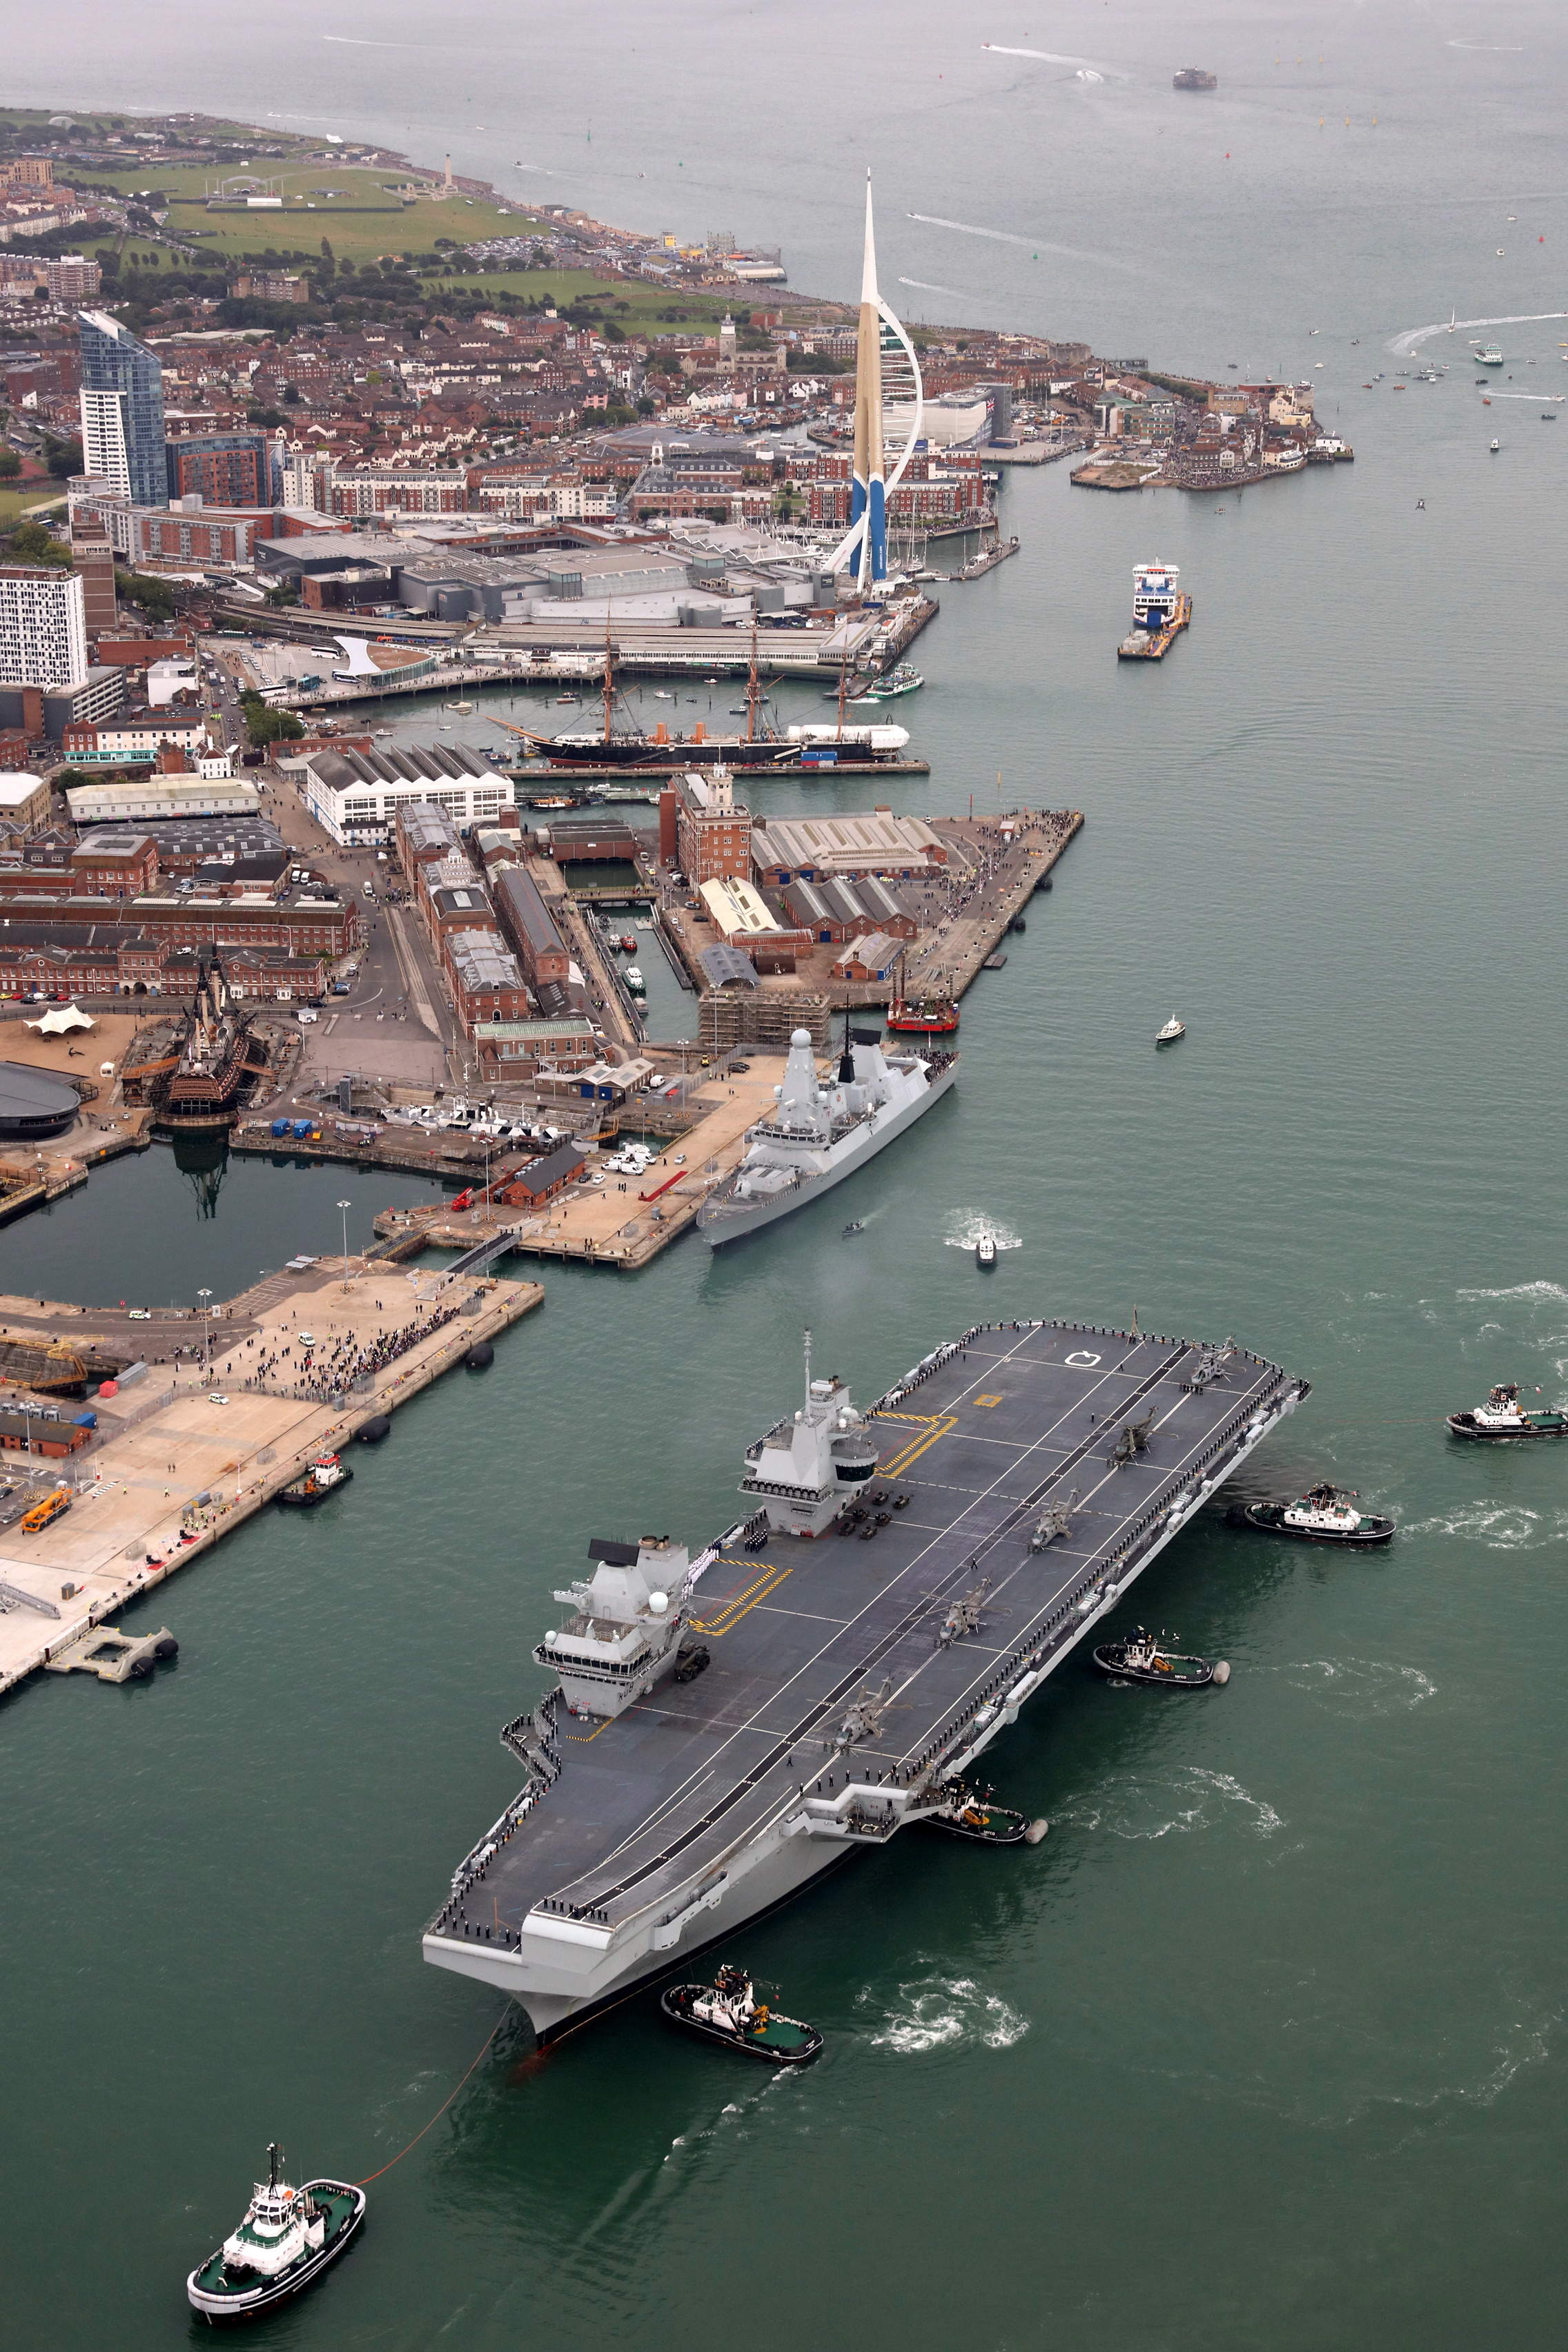 HMS Queen Elizabeth sails into her home port of Portsmouth for the first time